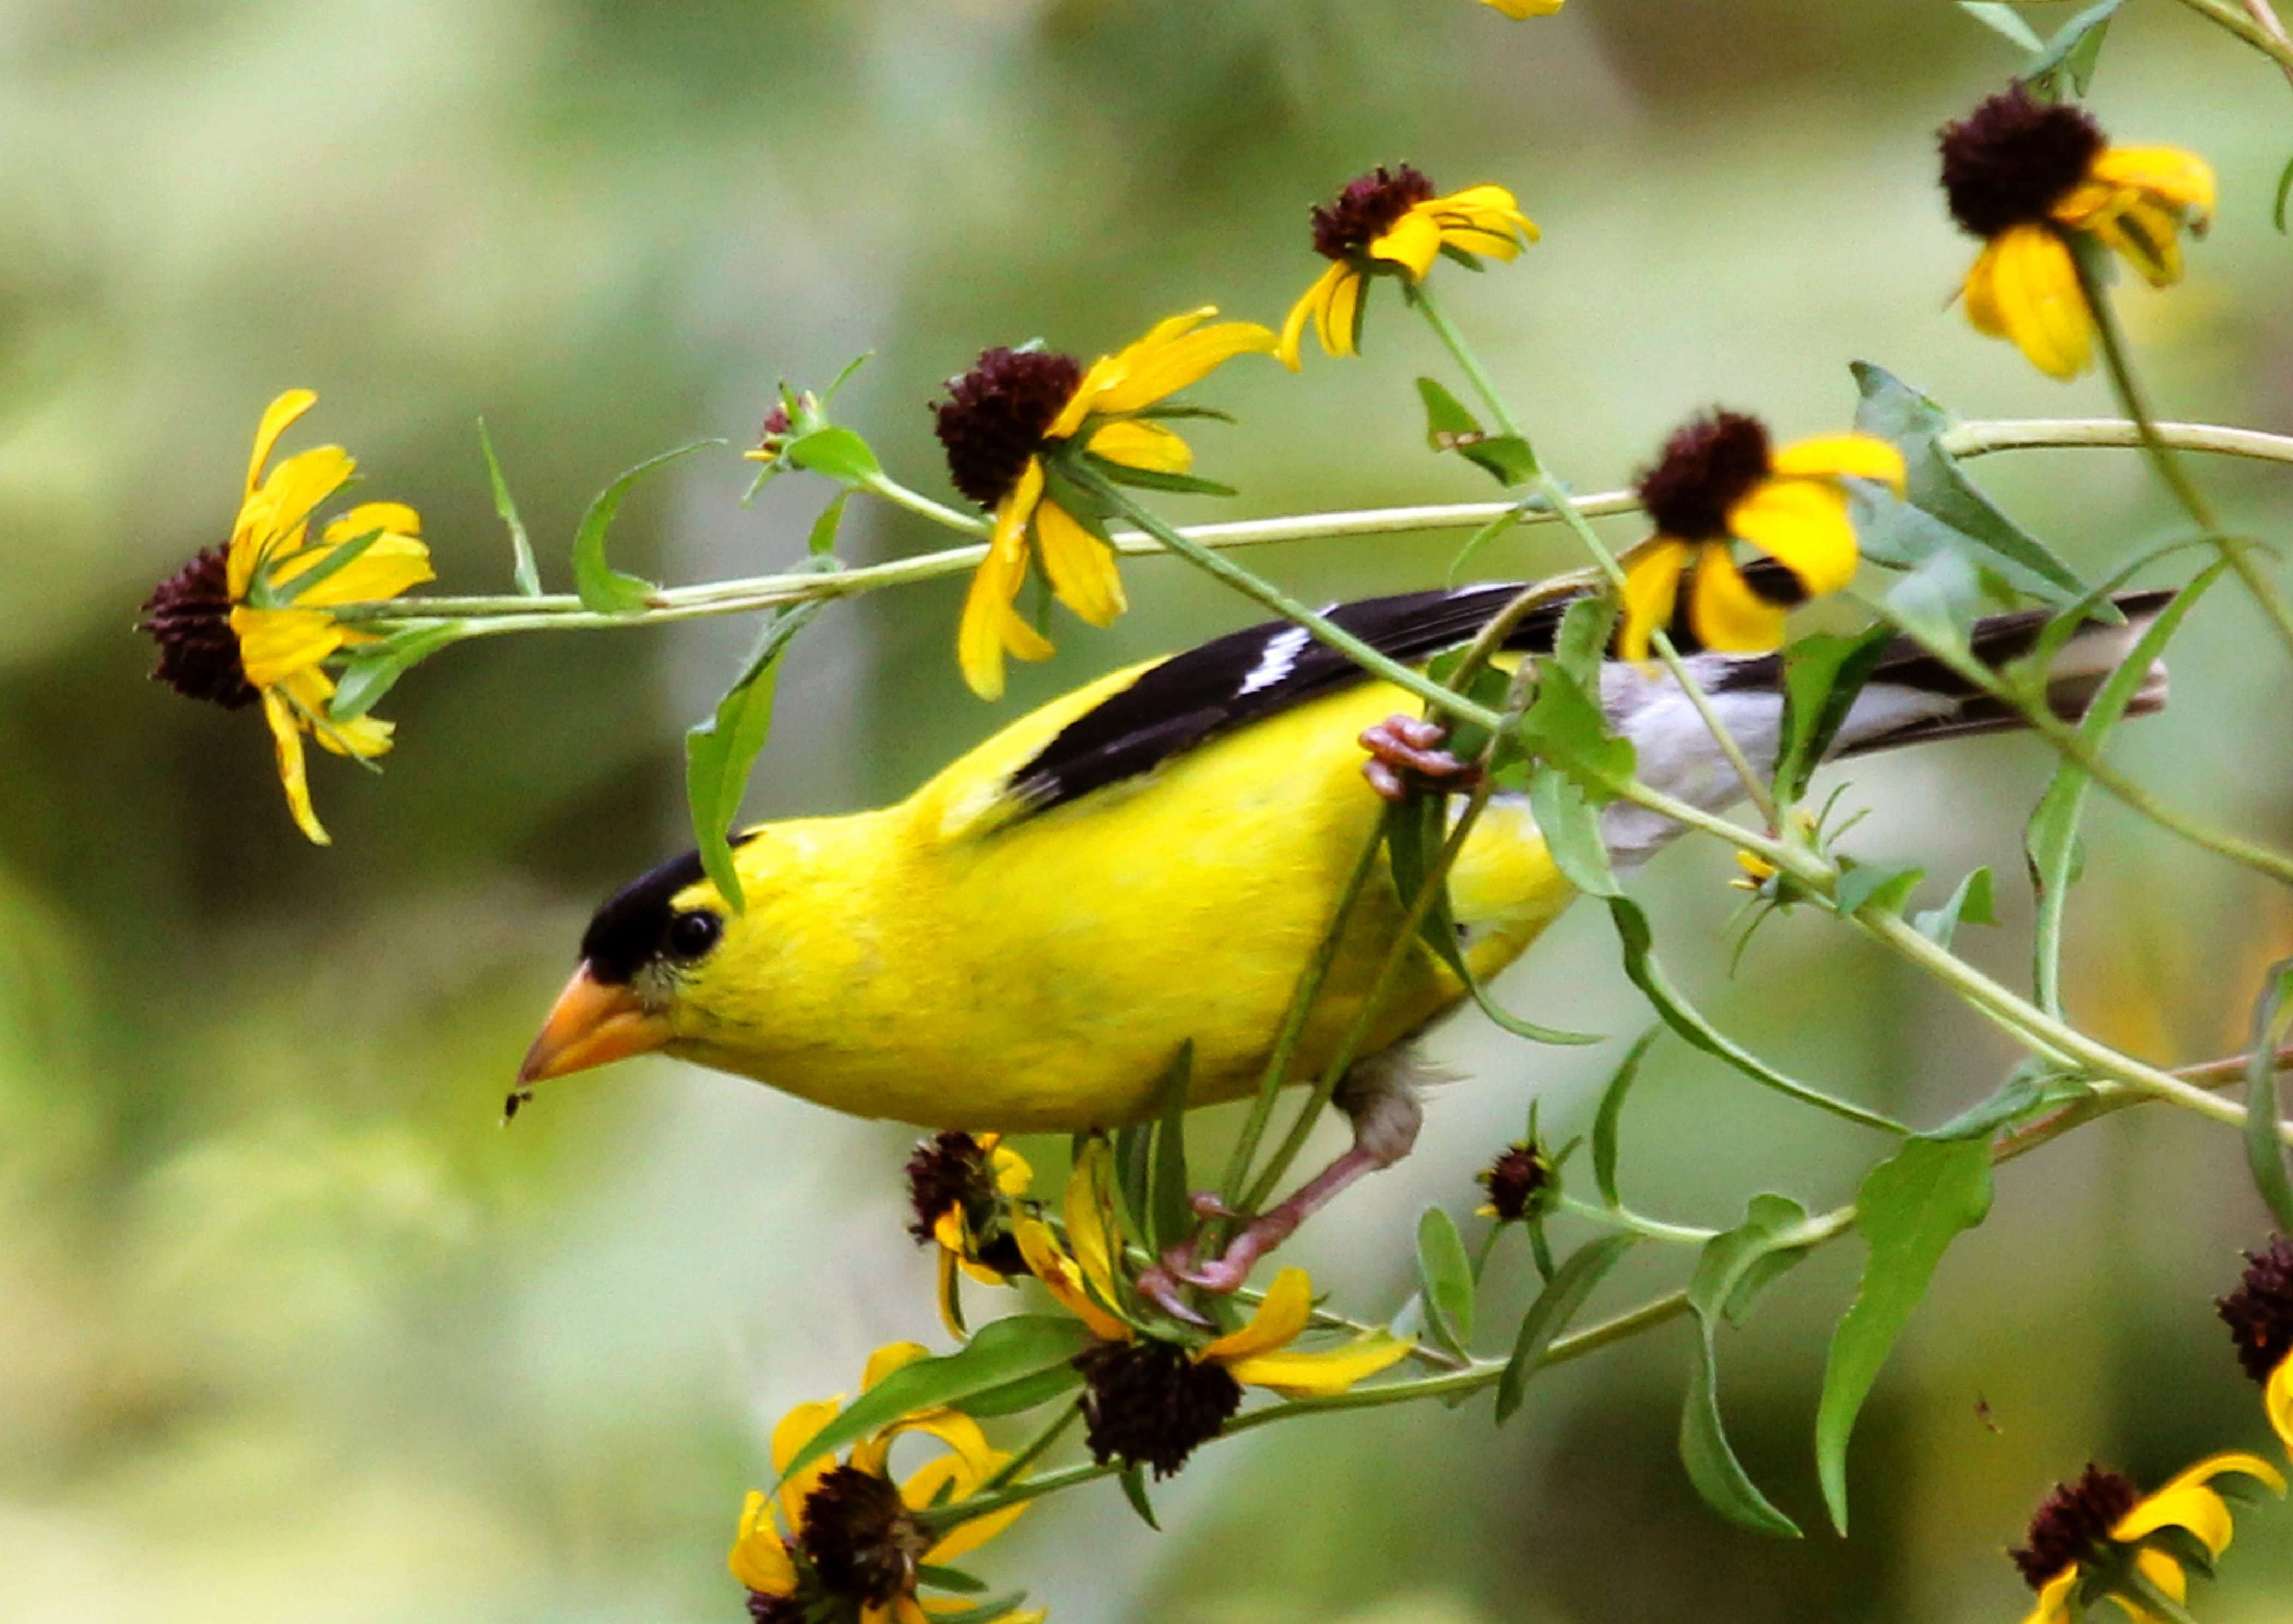 American Goldfinch Eats Seeds - Note Card in Wings in the Wild Box Set